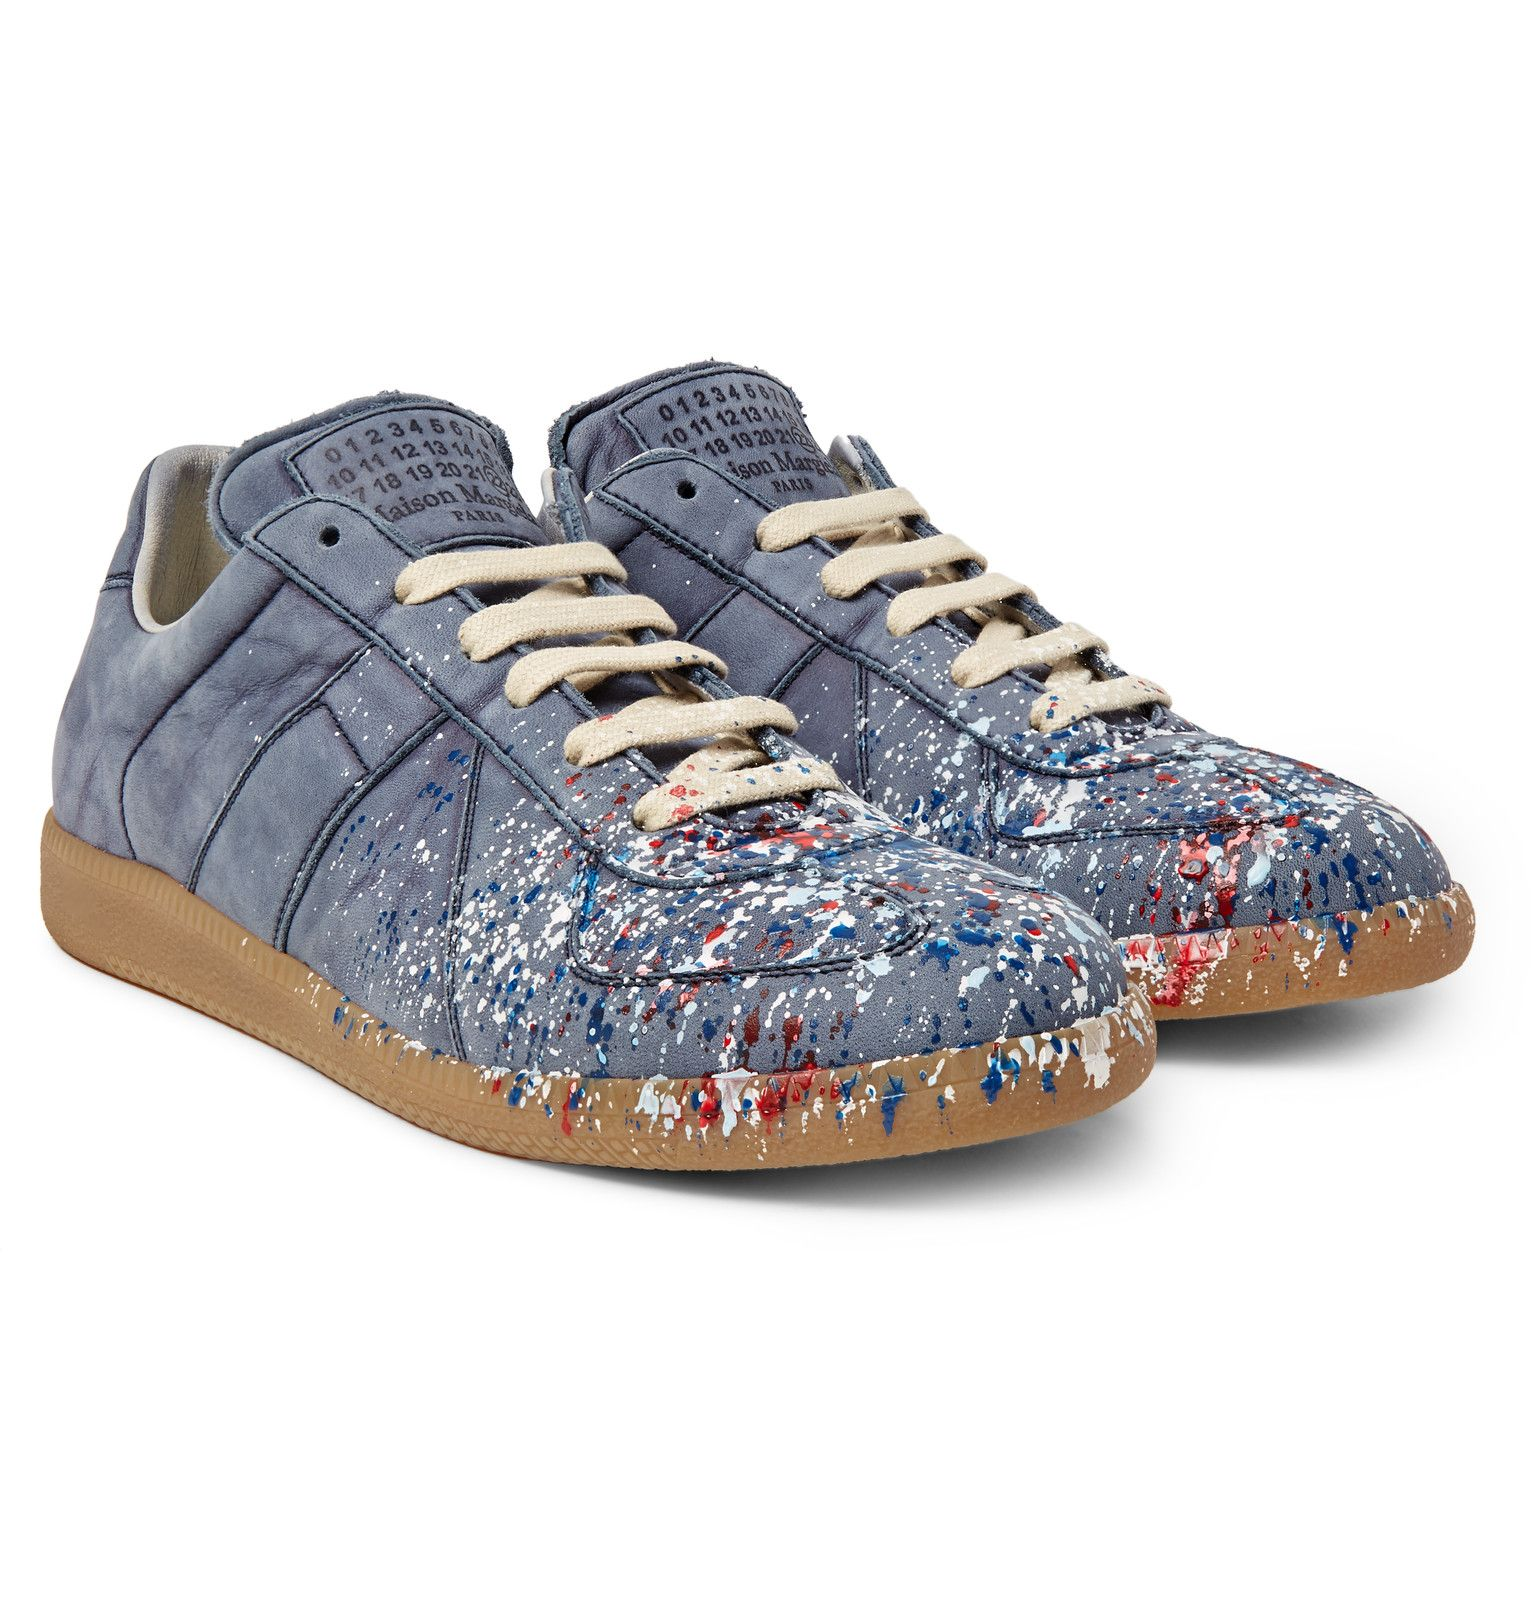 Maison margiela replica paint splattered nubuck sneakers for Replica maison martin margiela